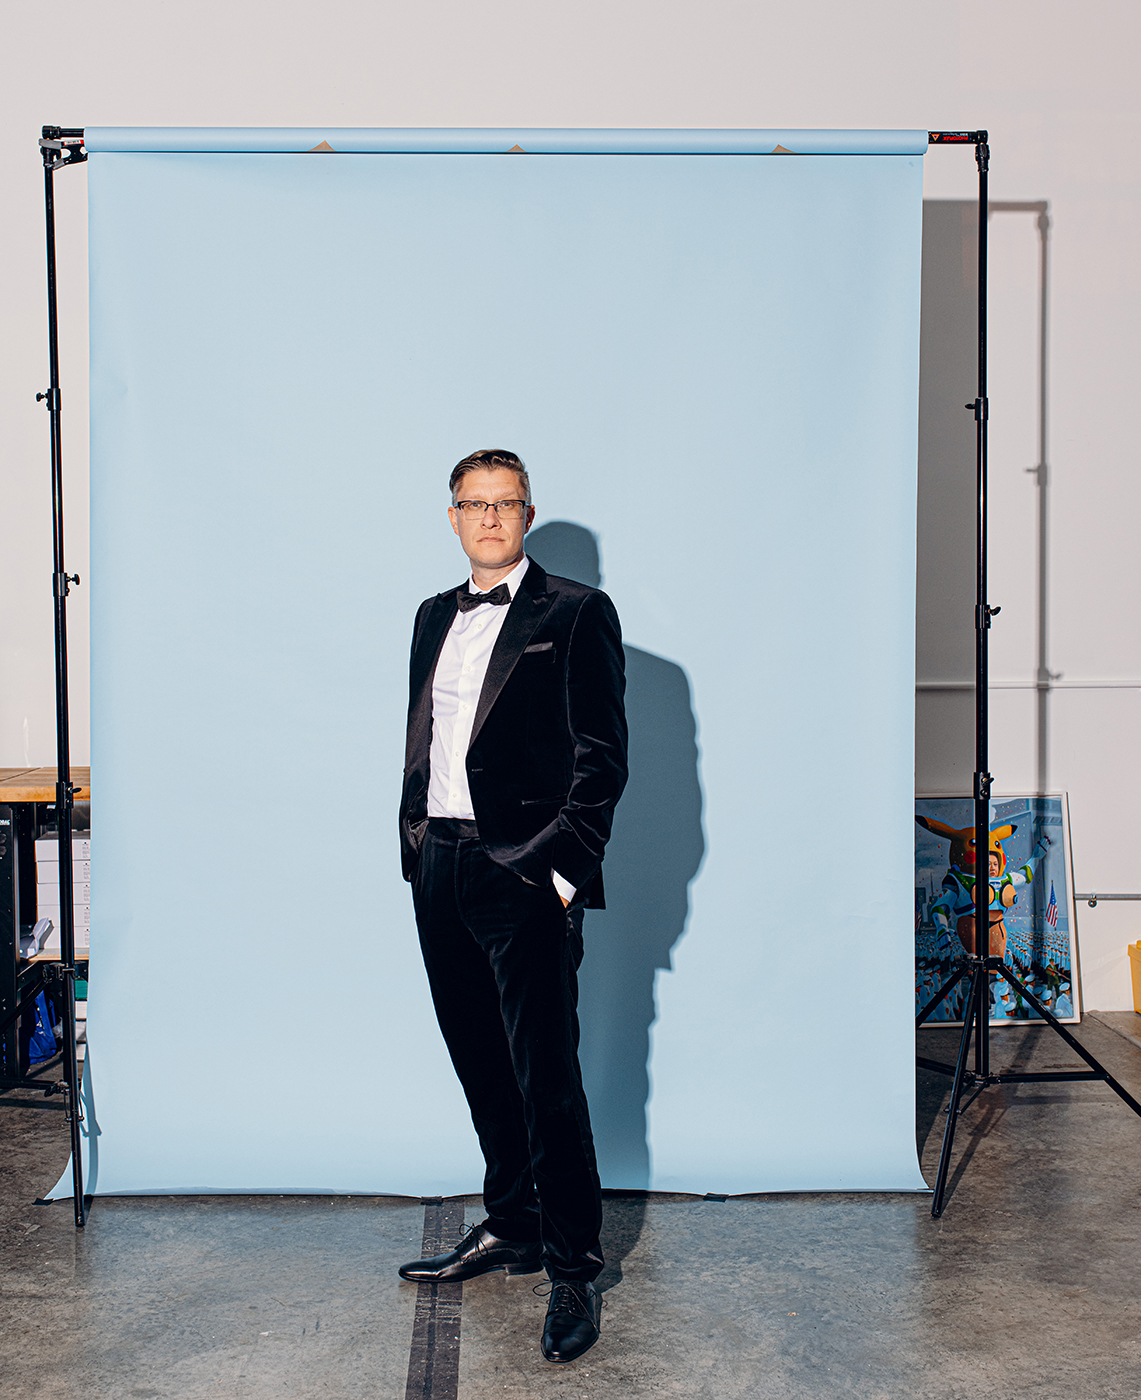 Beeple standing with his hands in his pockets in front of a light blue backdrop while wearing a tuxedo shot by Will Crooks for British GQ